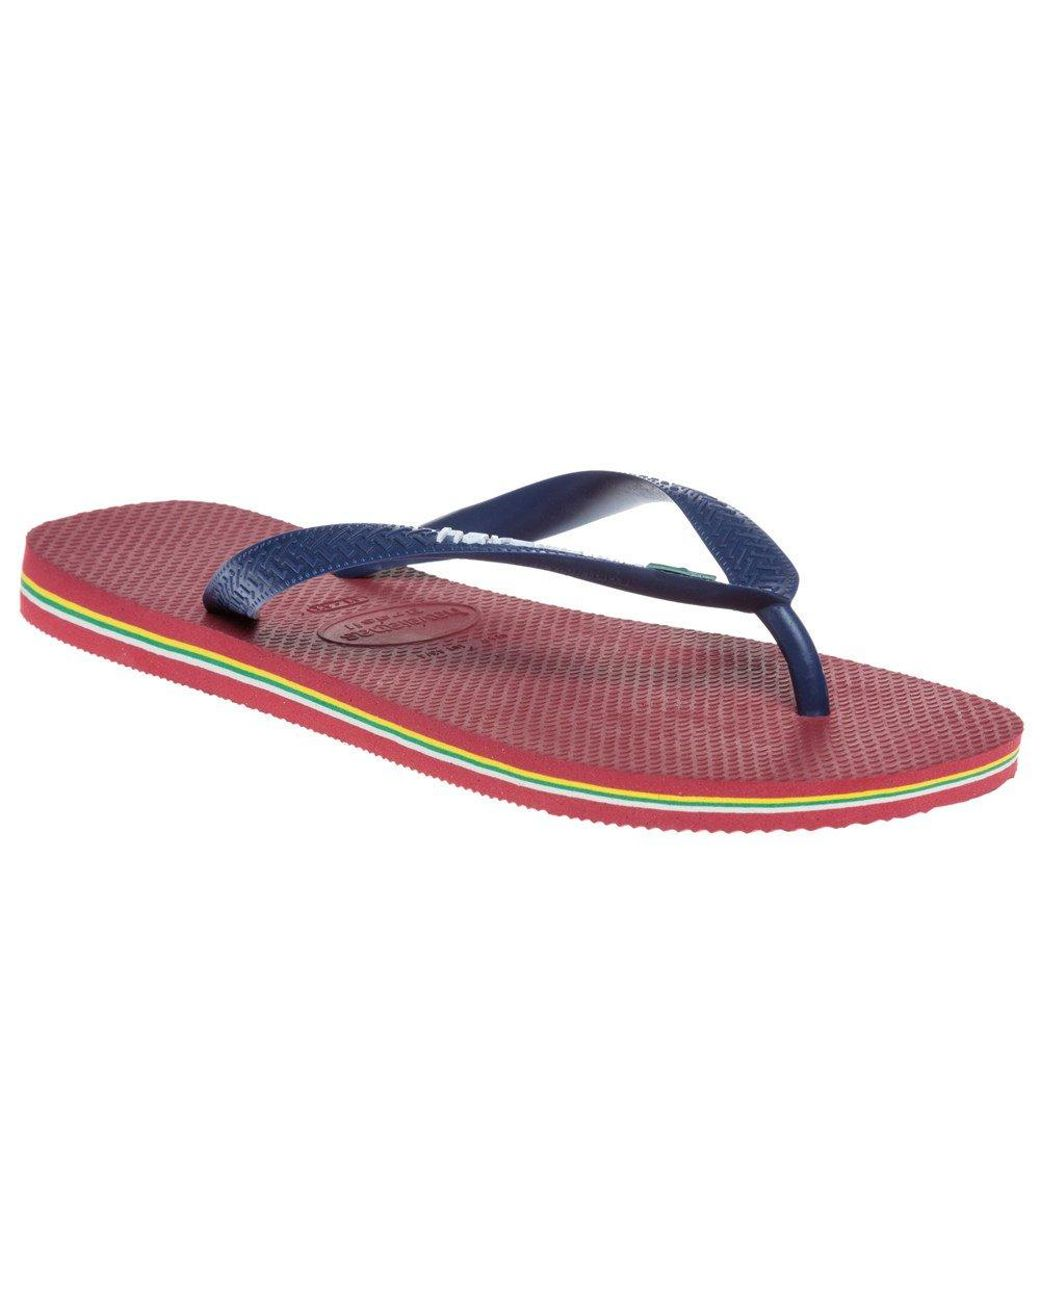 82cabf3a12c0 Havaianas Brasil Sandals in Blue for Men - Lyst